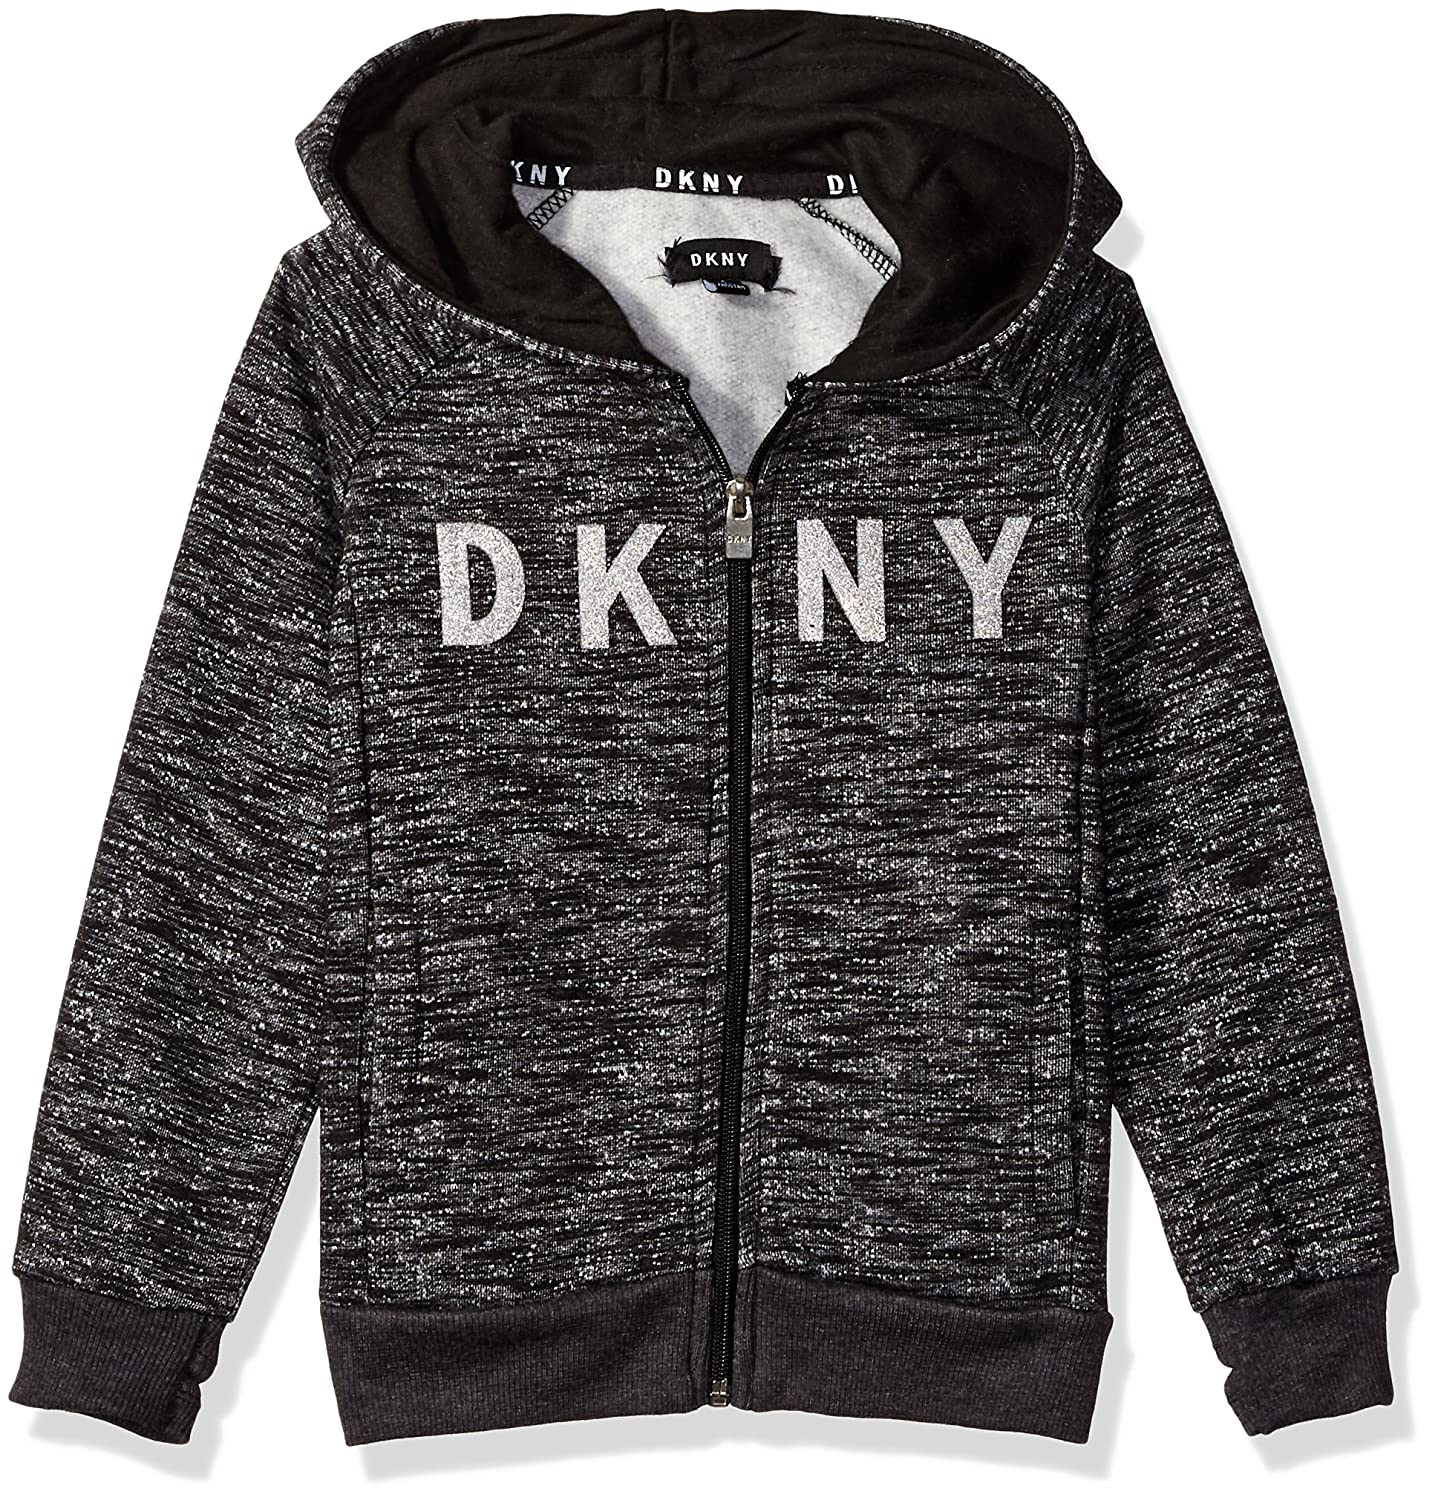 DKNY Boys' Marled Fleece Zip Front Hoody DB_0379